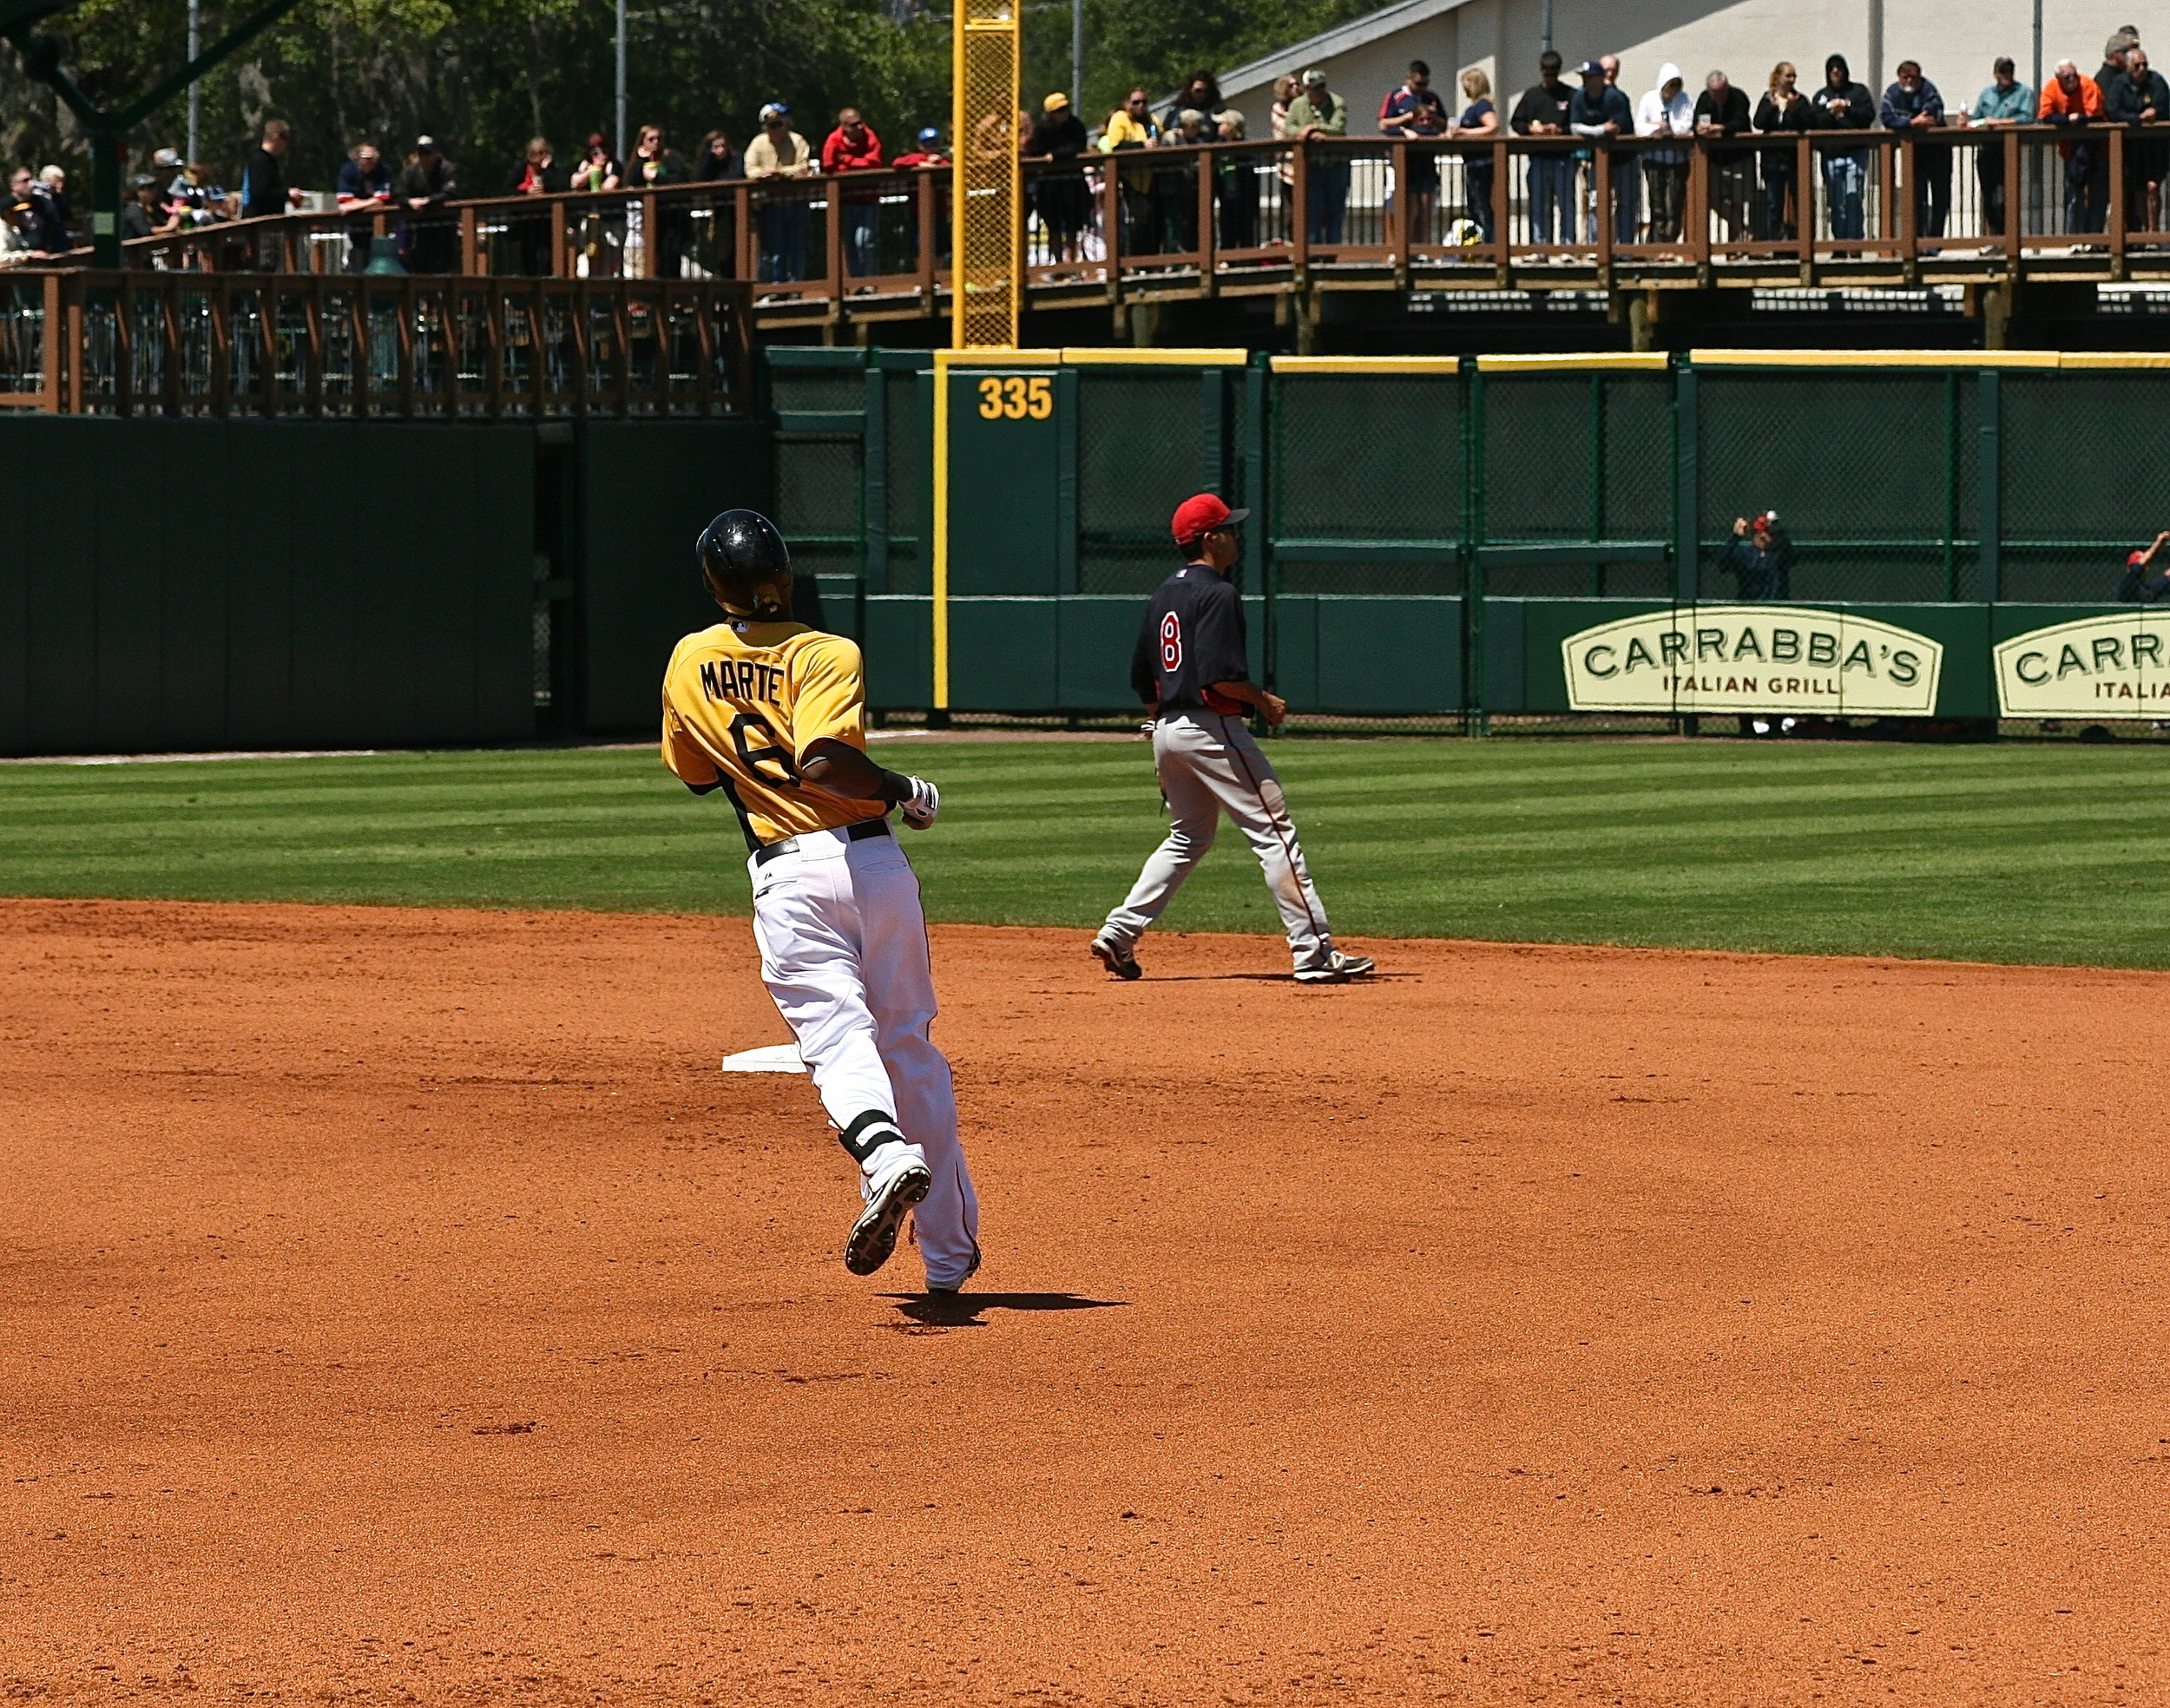 Starling Marte twisting around the bases